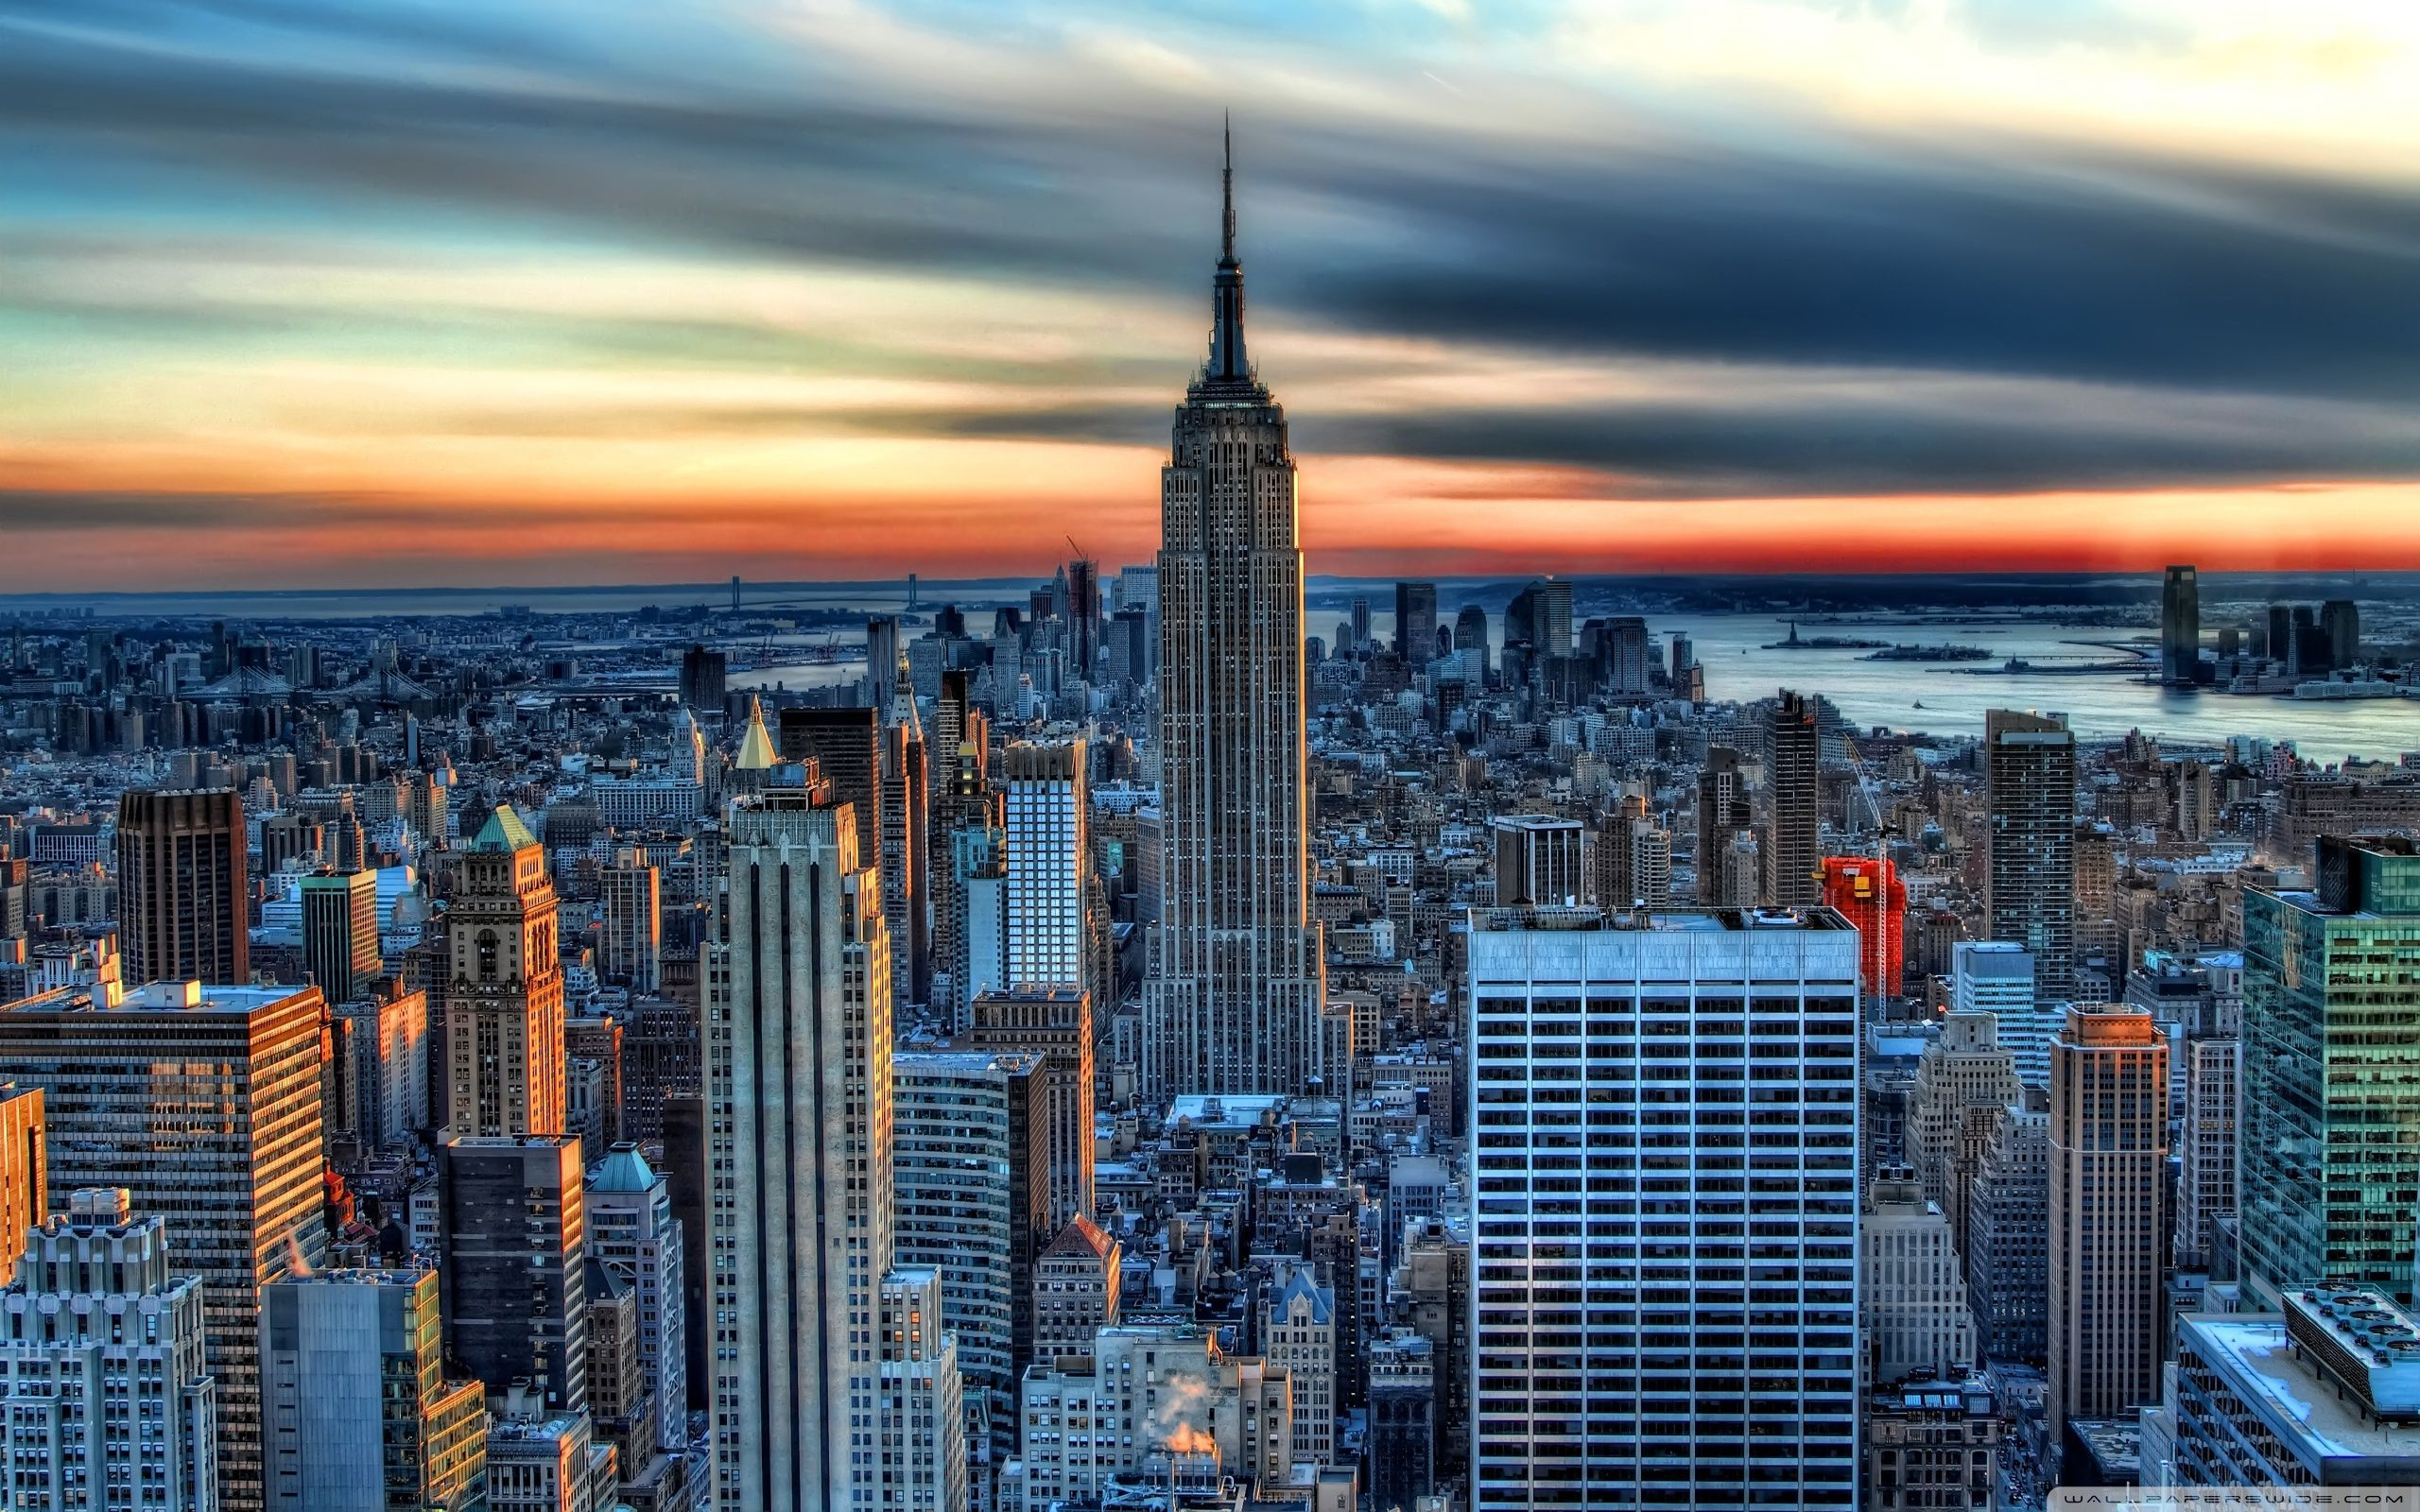 Hd Photos New York Buildings Empire State Building City Wallpaper